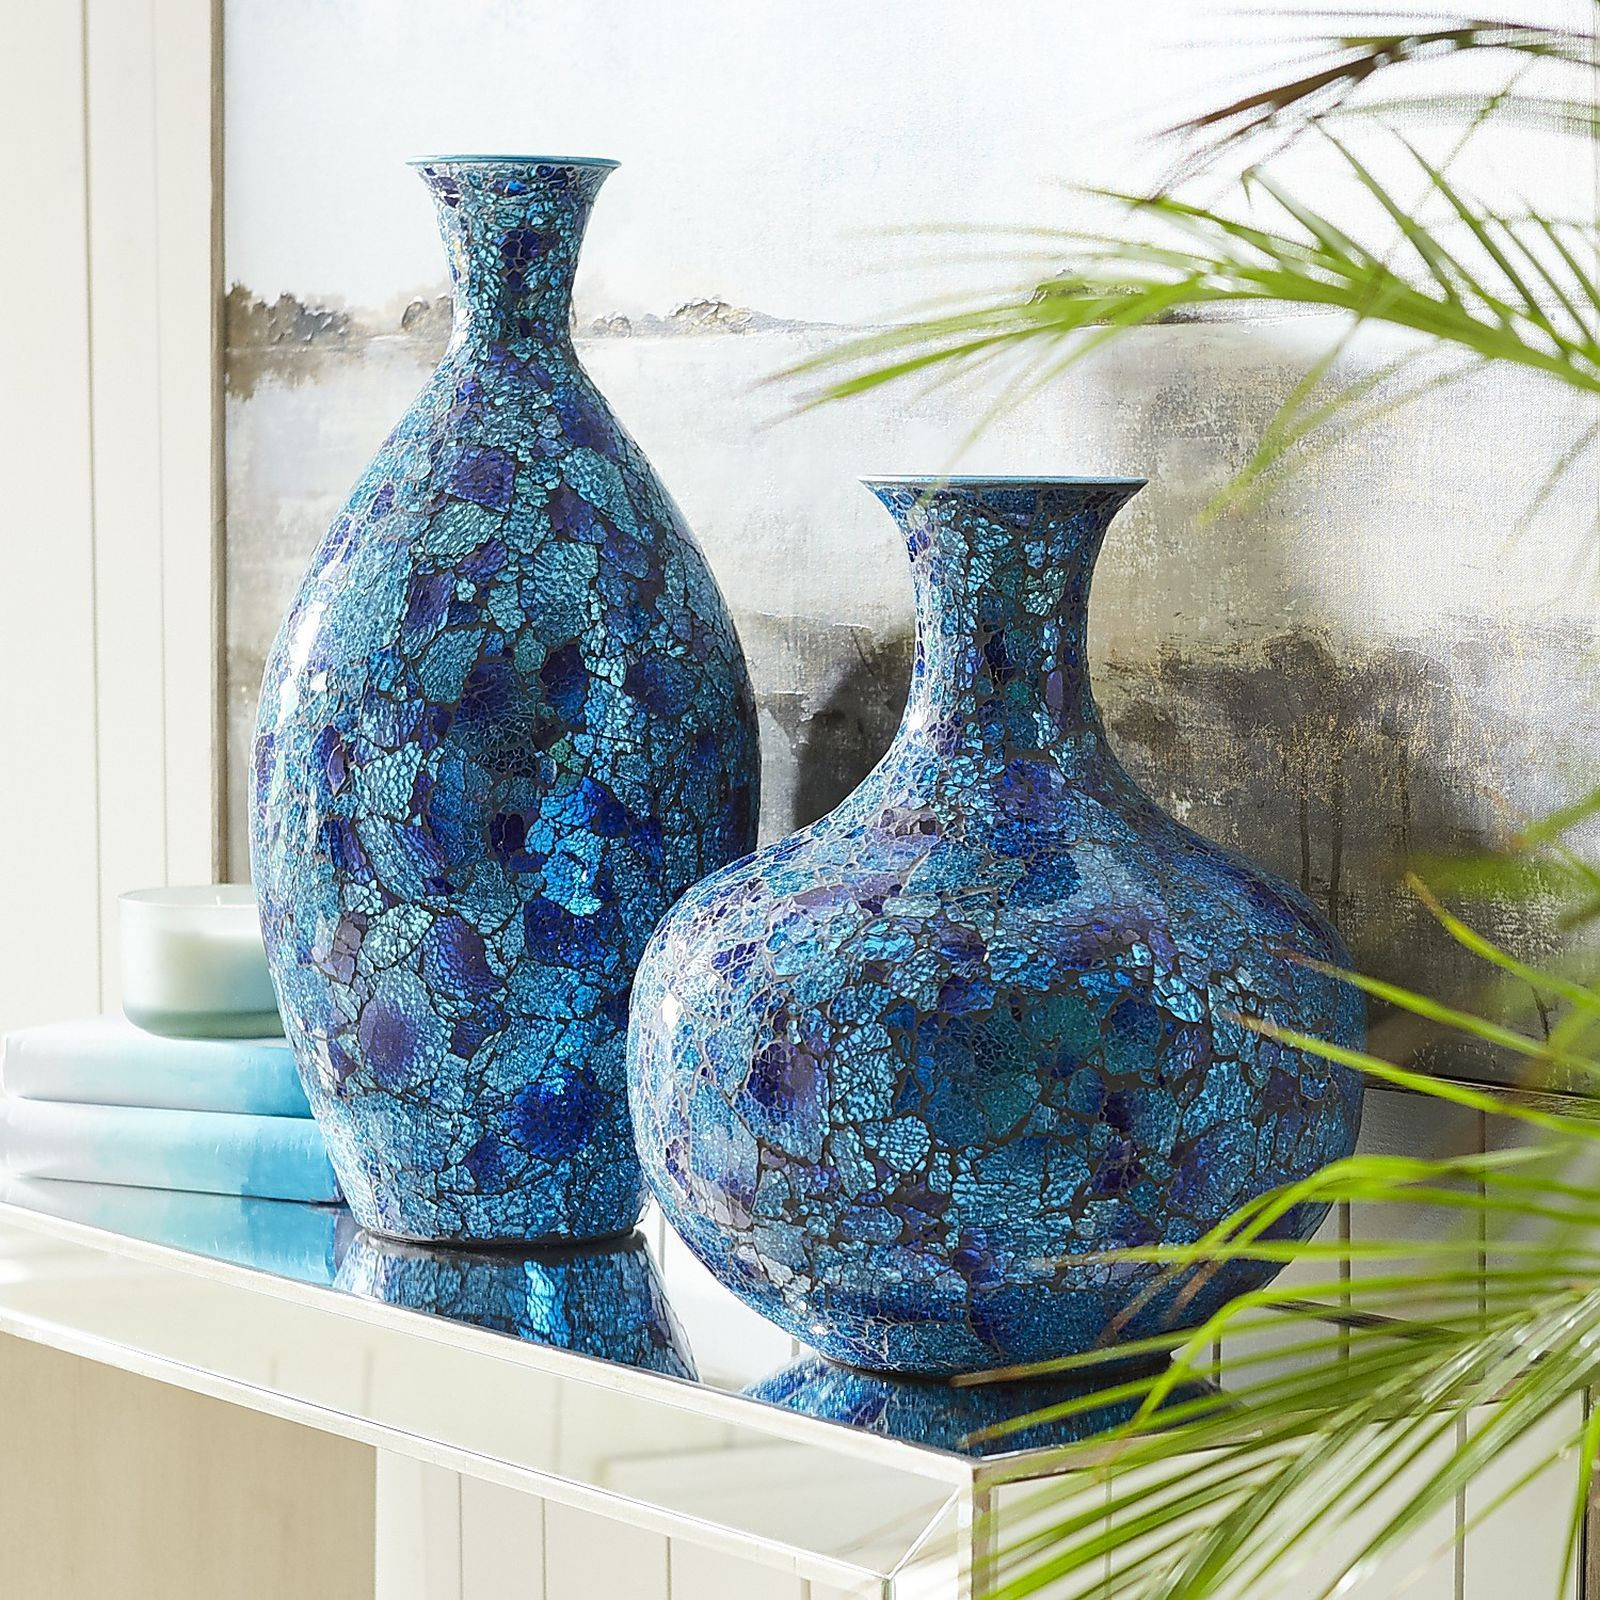 blue mosaic vase of the splendor of the sea is captured in our dazzling iron and glass for the splendor of the sea is captured in our dazzling iron and glass mosaic vases with splendid peacock blues and greens theyre gorgeous on their own and